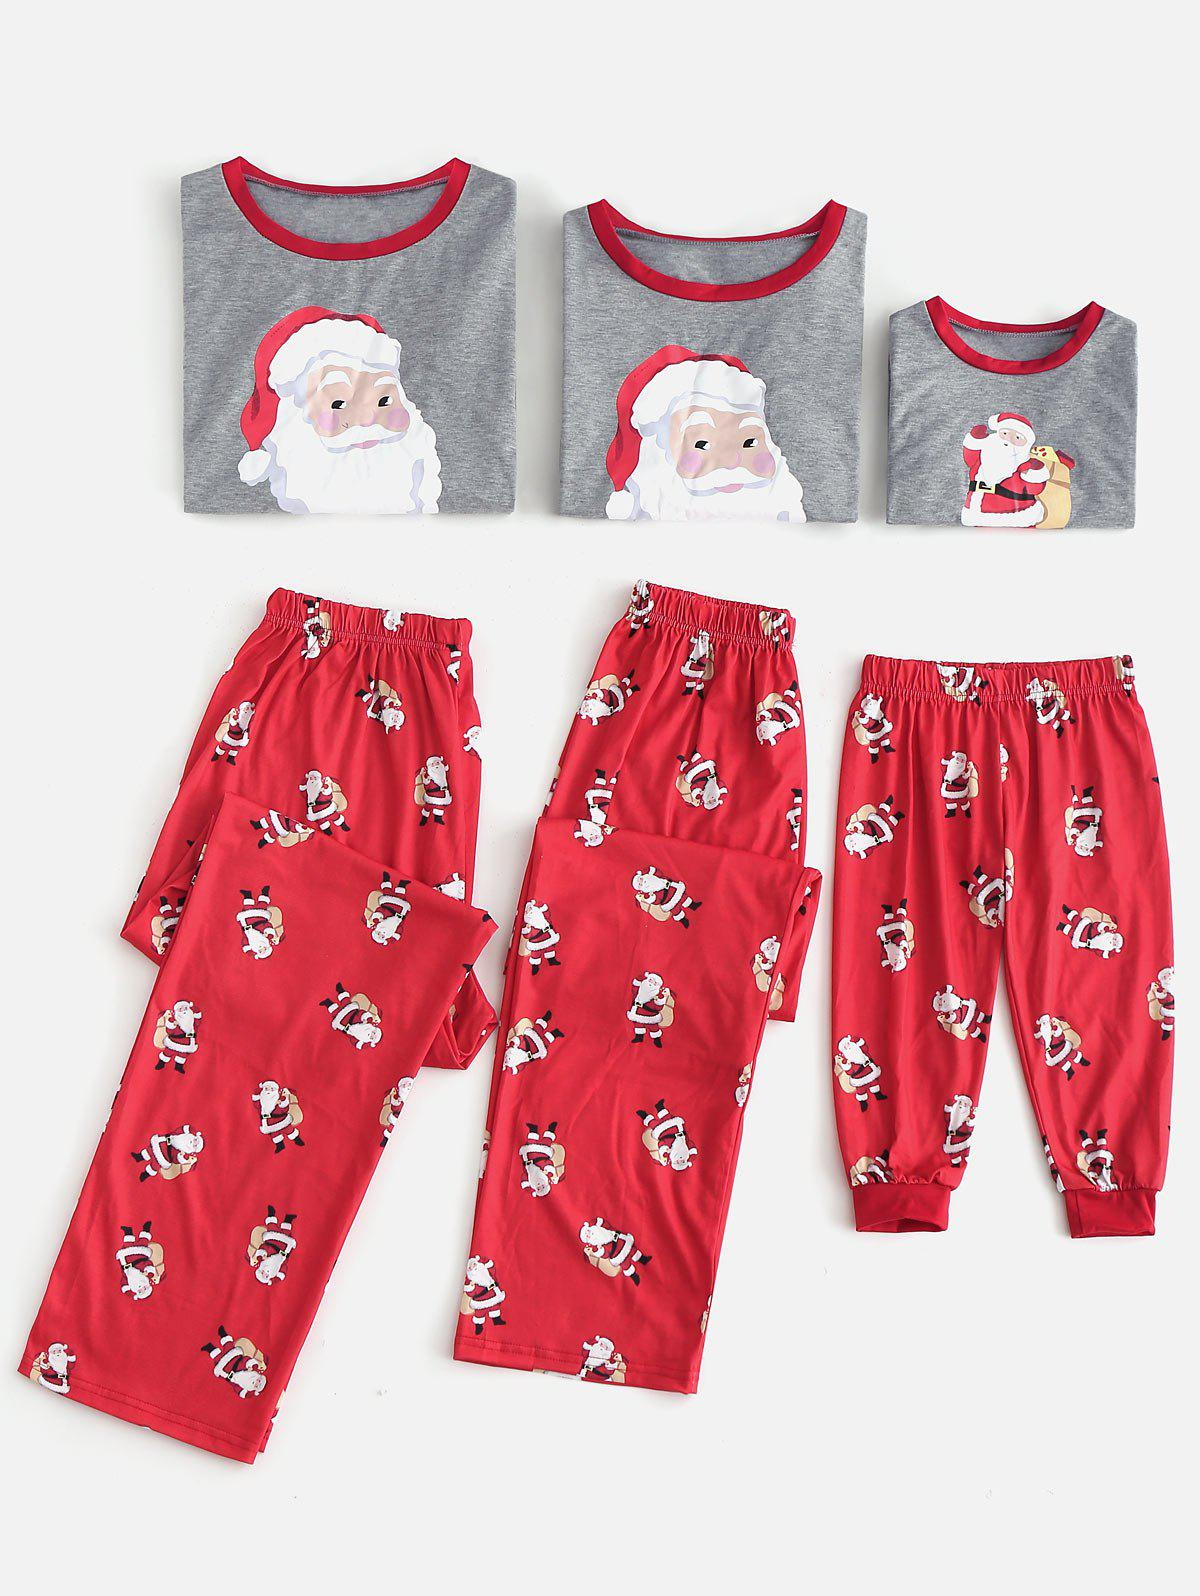 Best Santa Claus Patterned Matching Christmas Family Pajamas